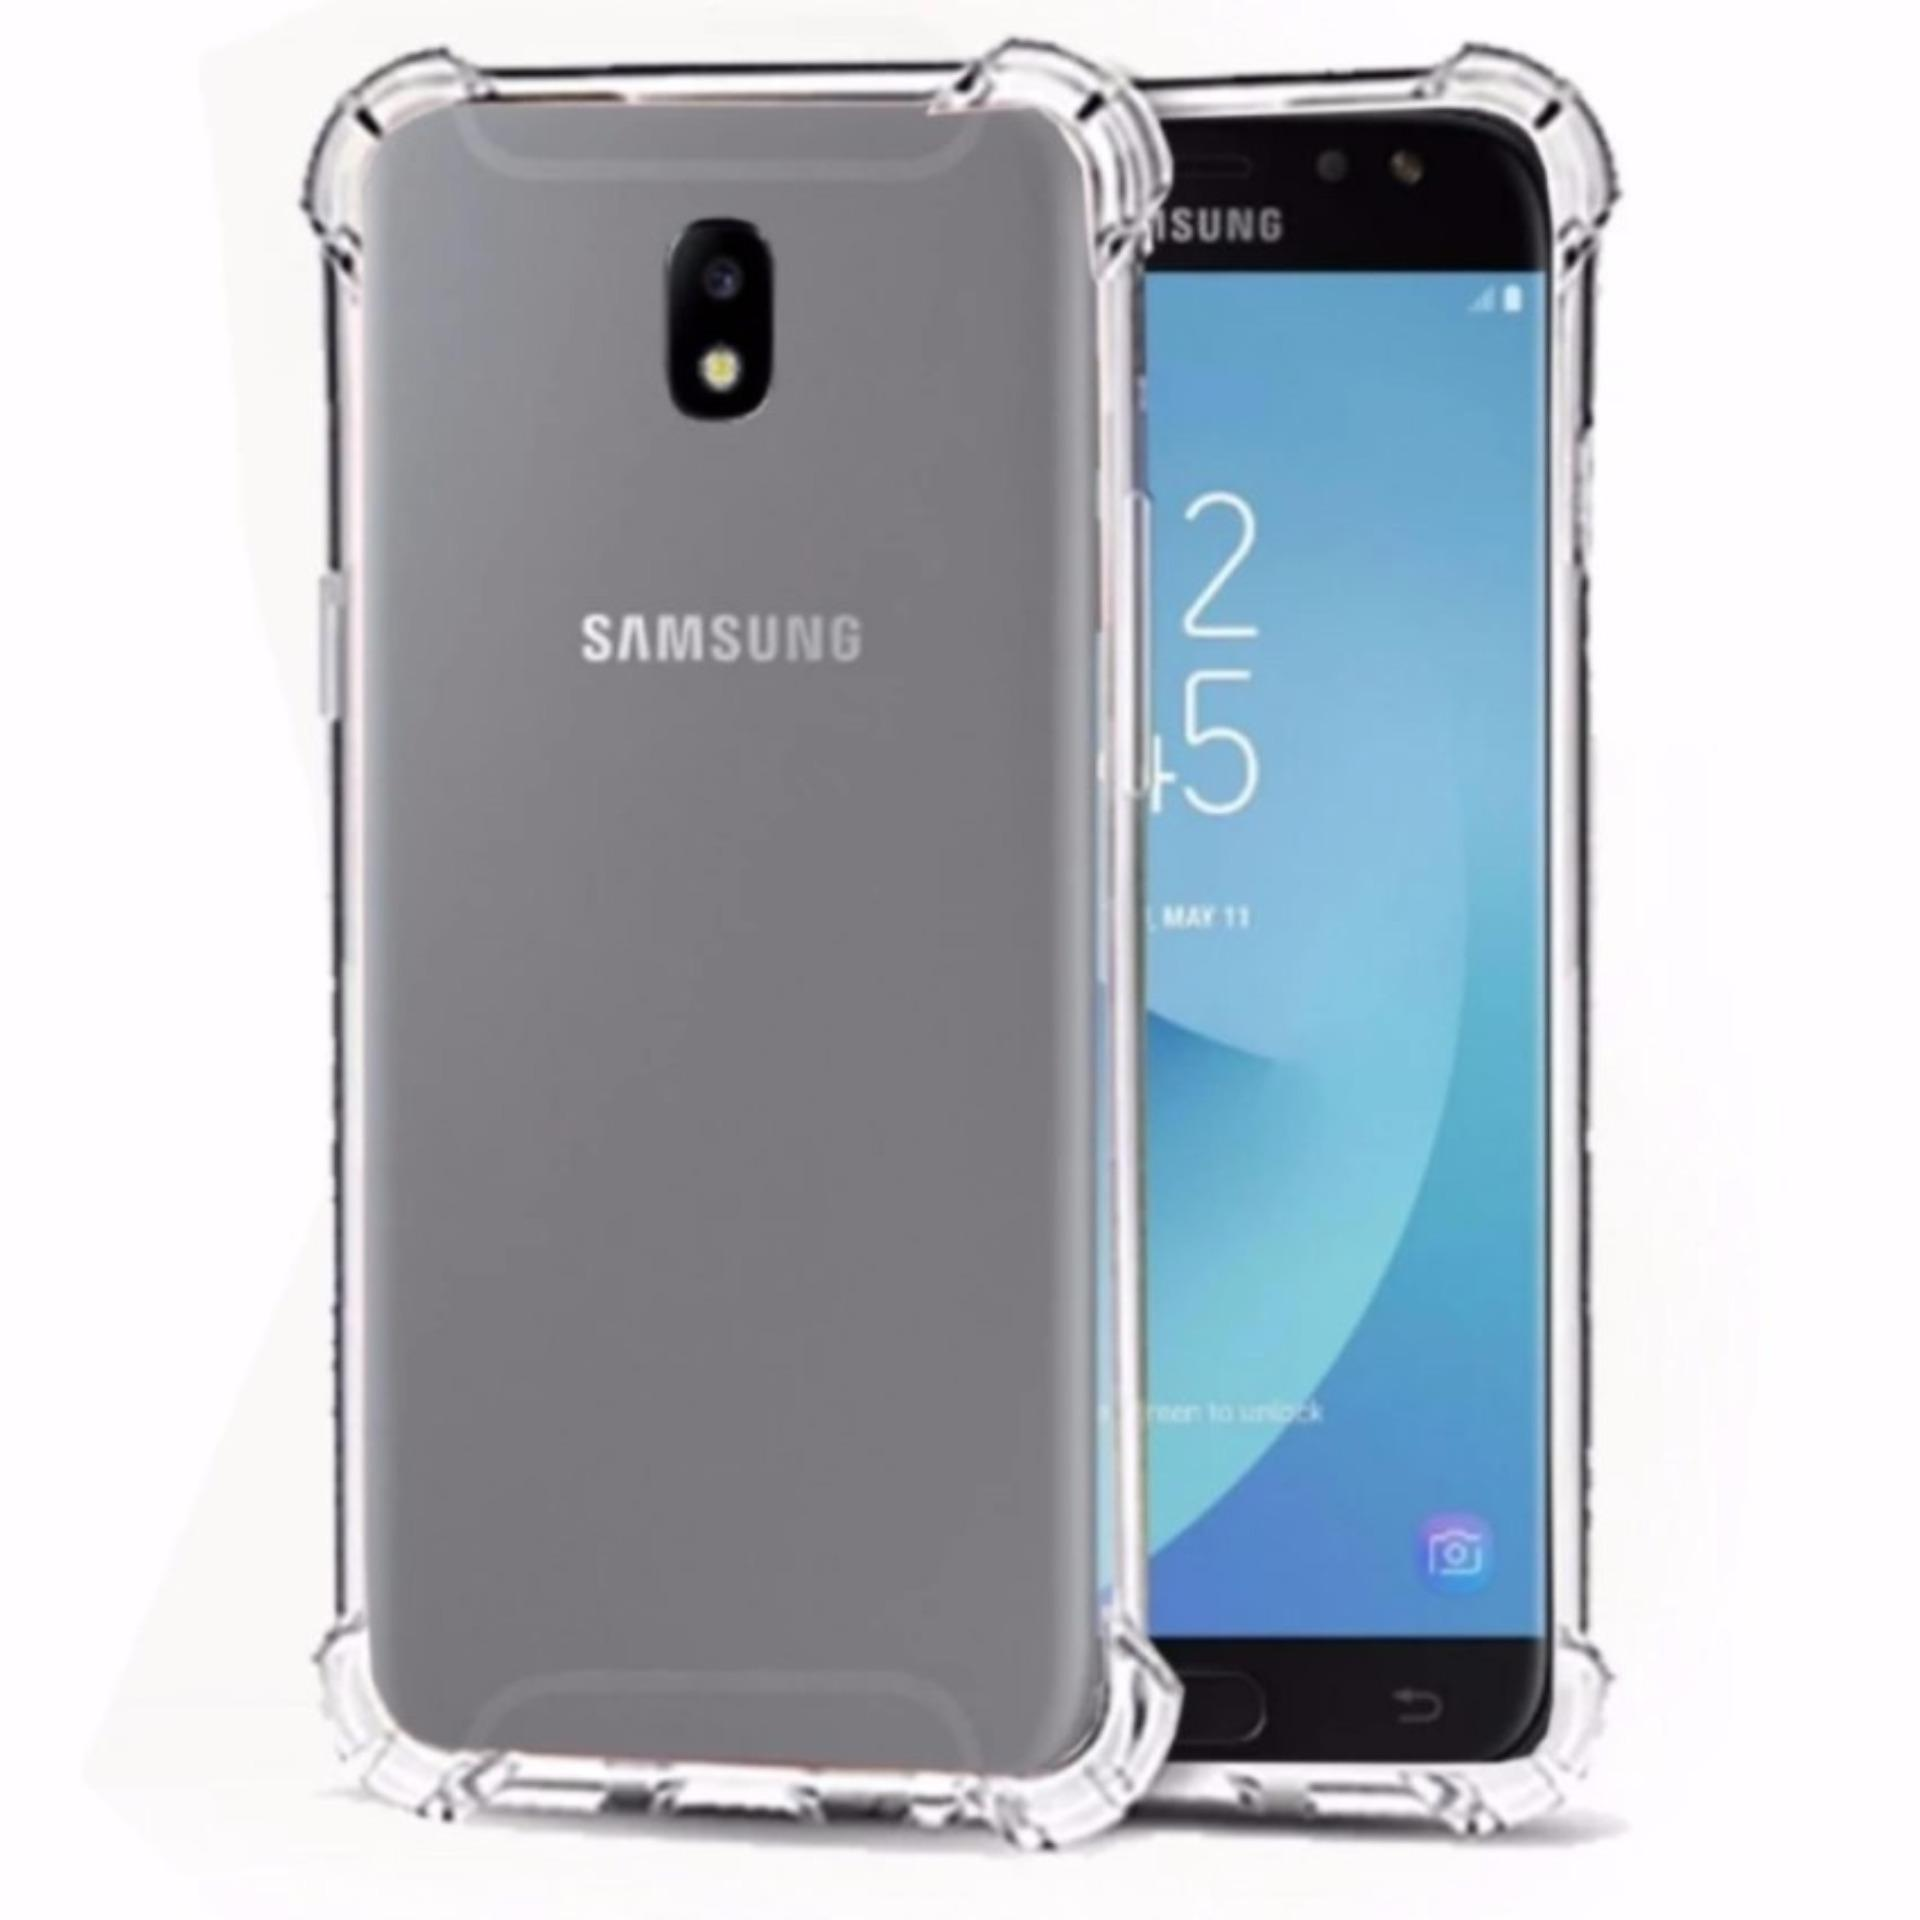 Soft Case Anti Crack  / Anti Shock Case Samsung Galaxy J5 2017, J5 Pro 2017 4G / Case Hp - Clear